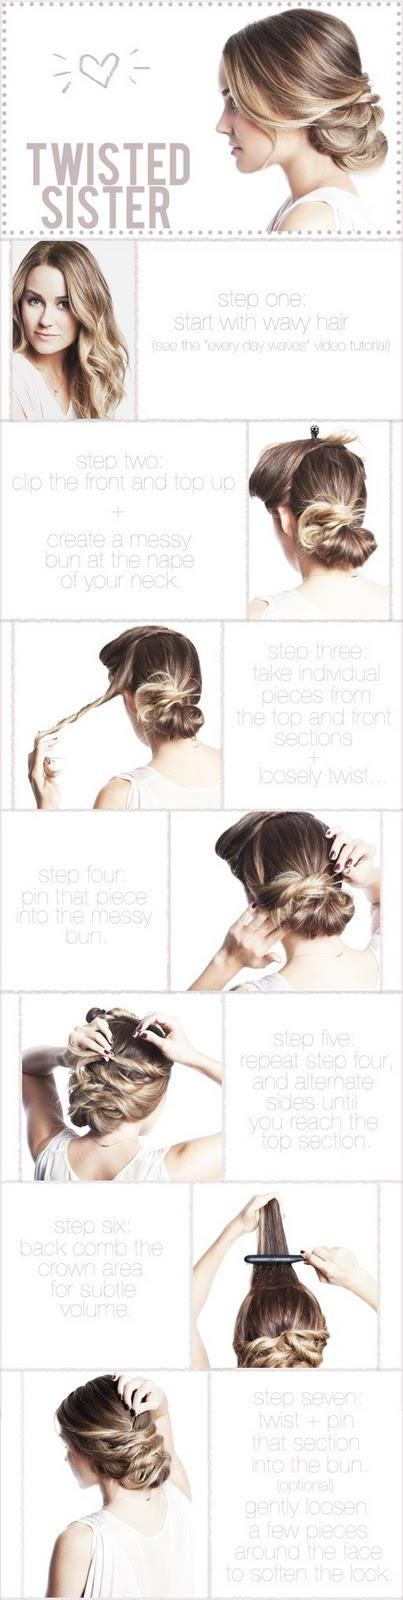 Hair Tutorial - Twisted Updo